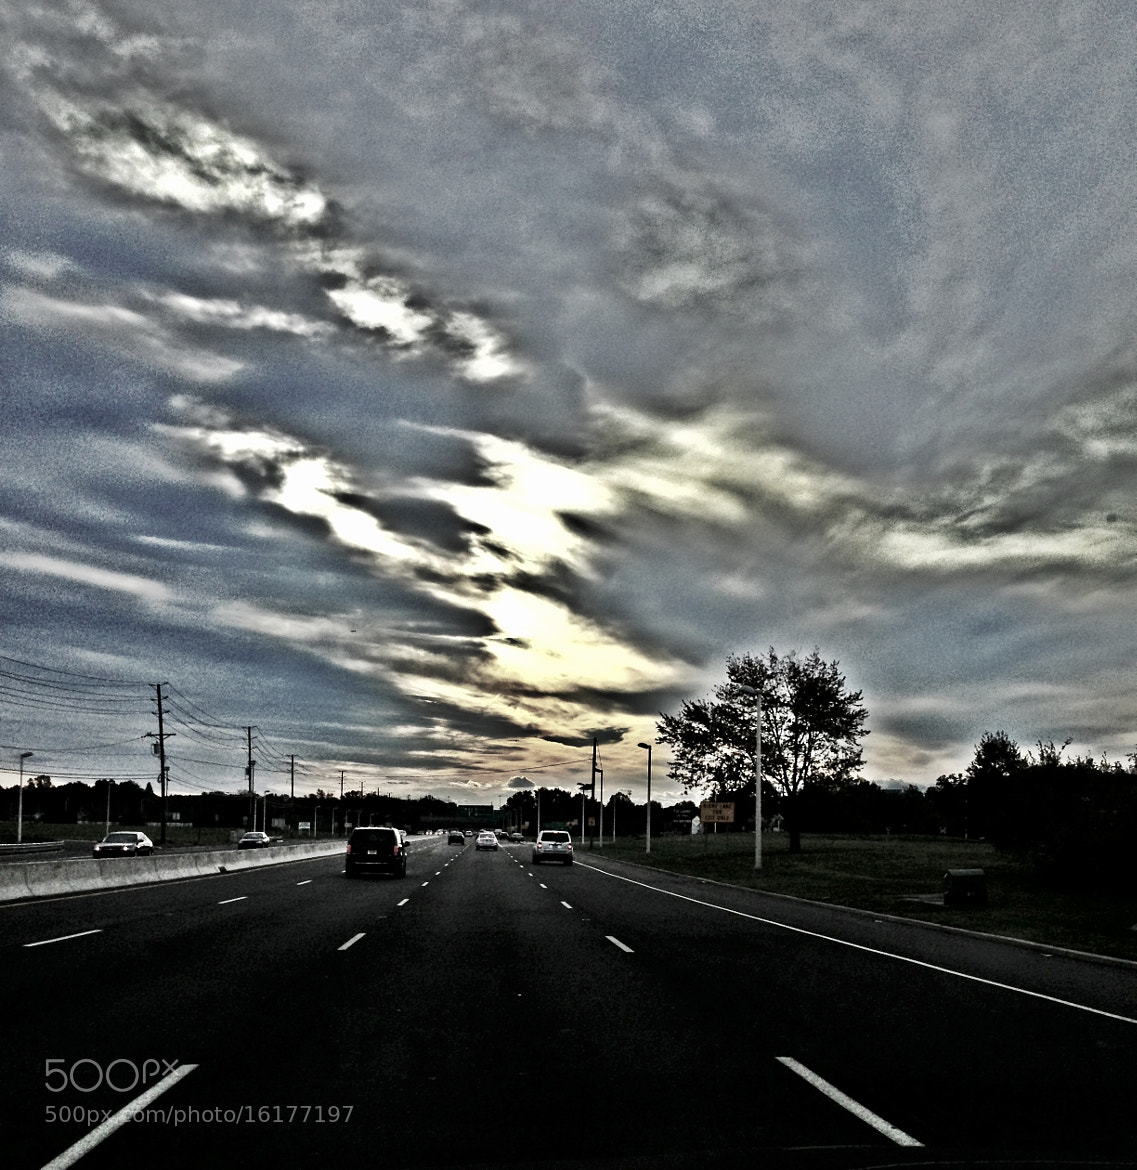 Photograph On the Road with my iPhone 4S by Arun Kumar Duddilla on 500px